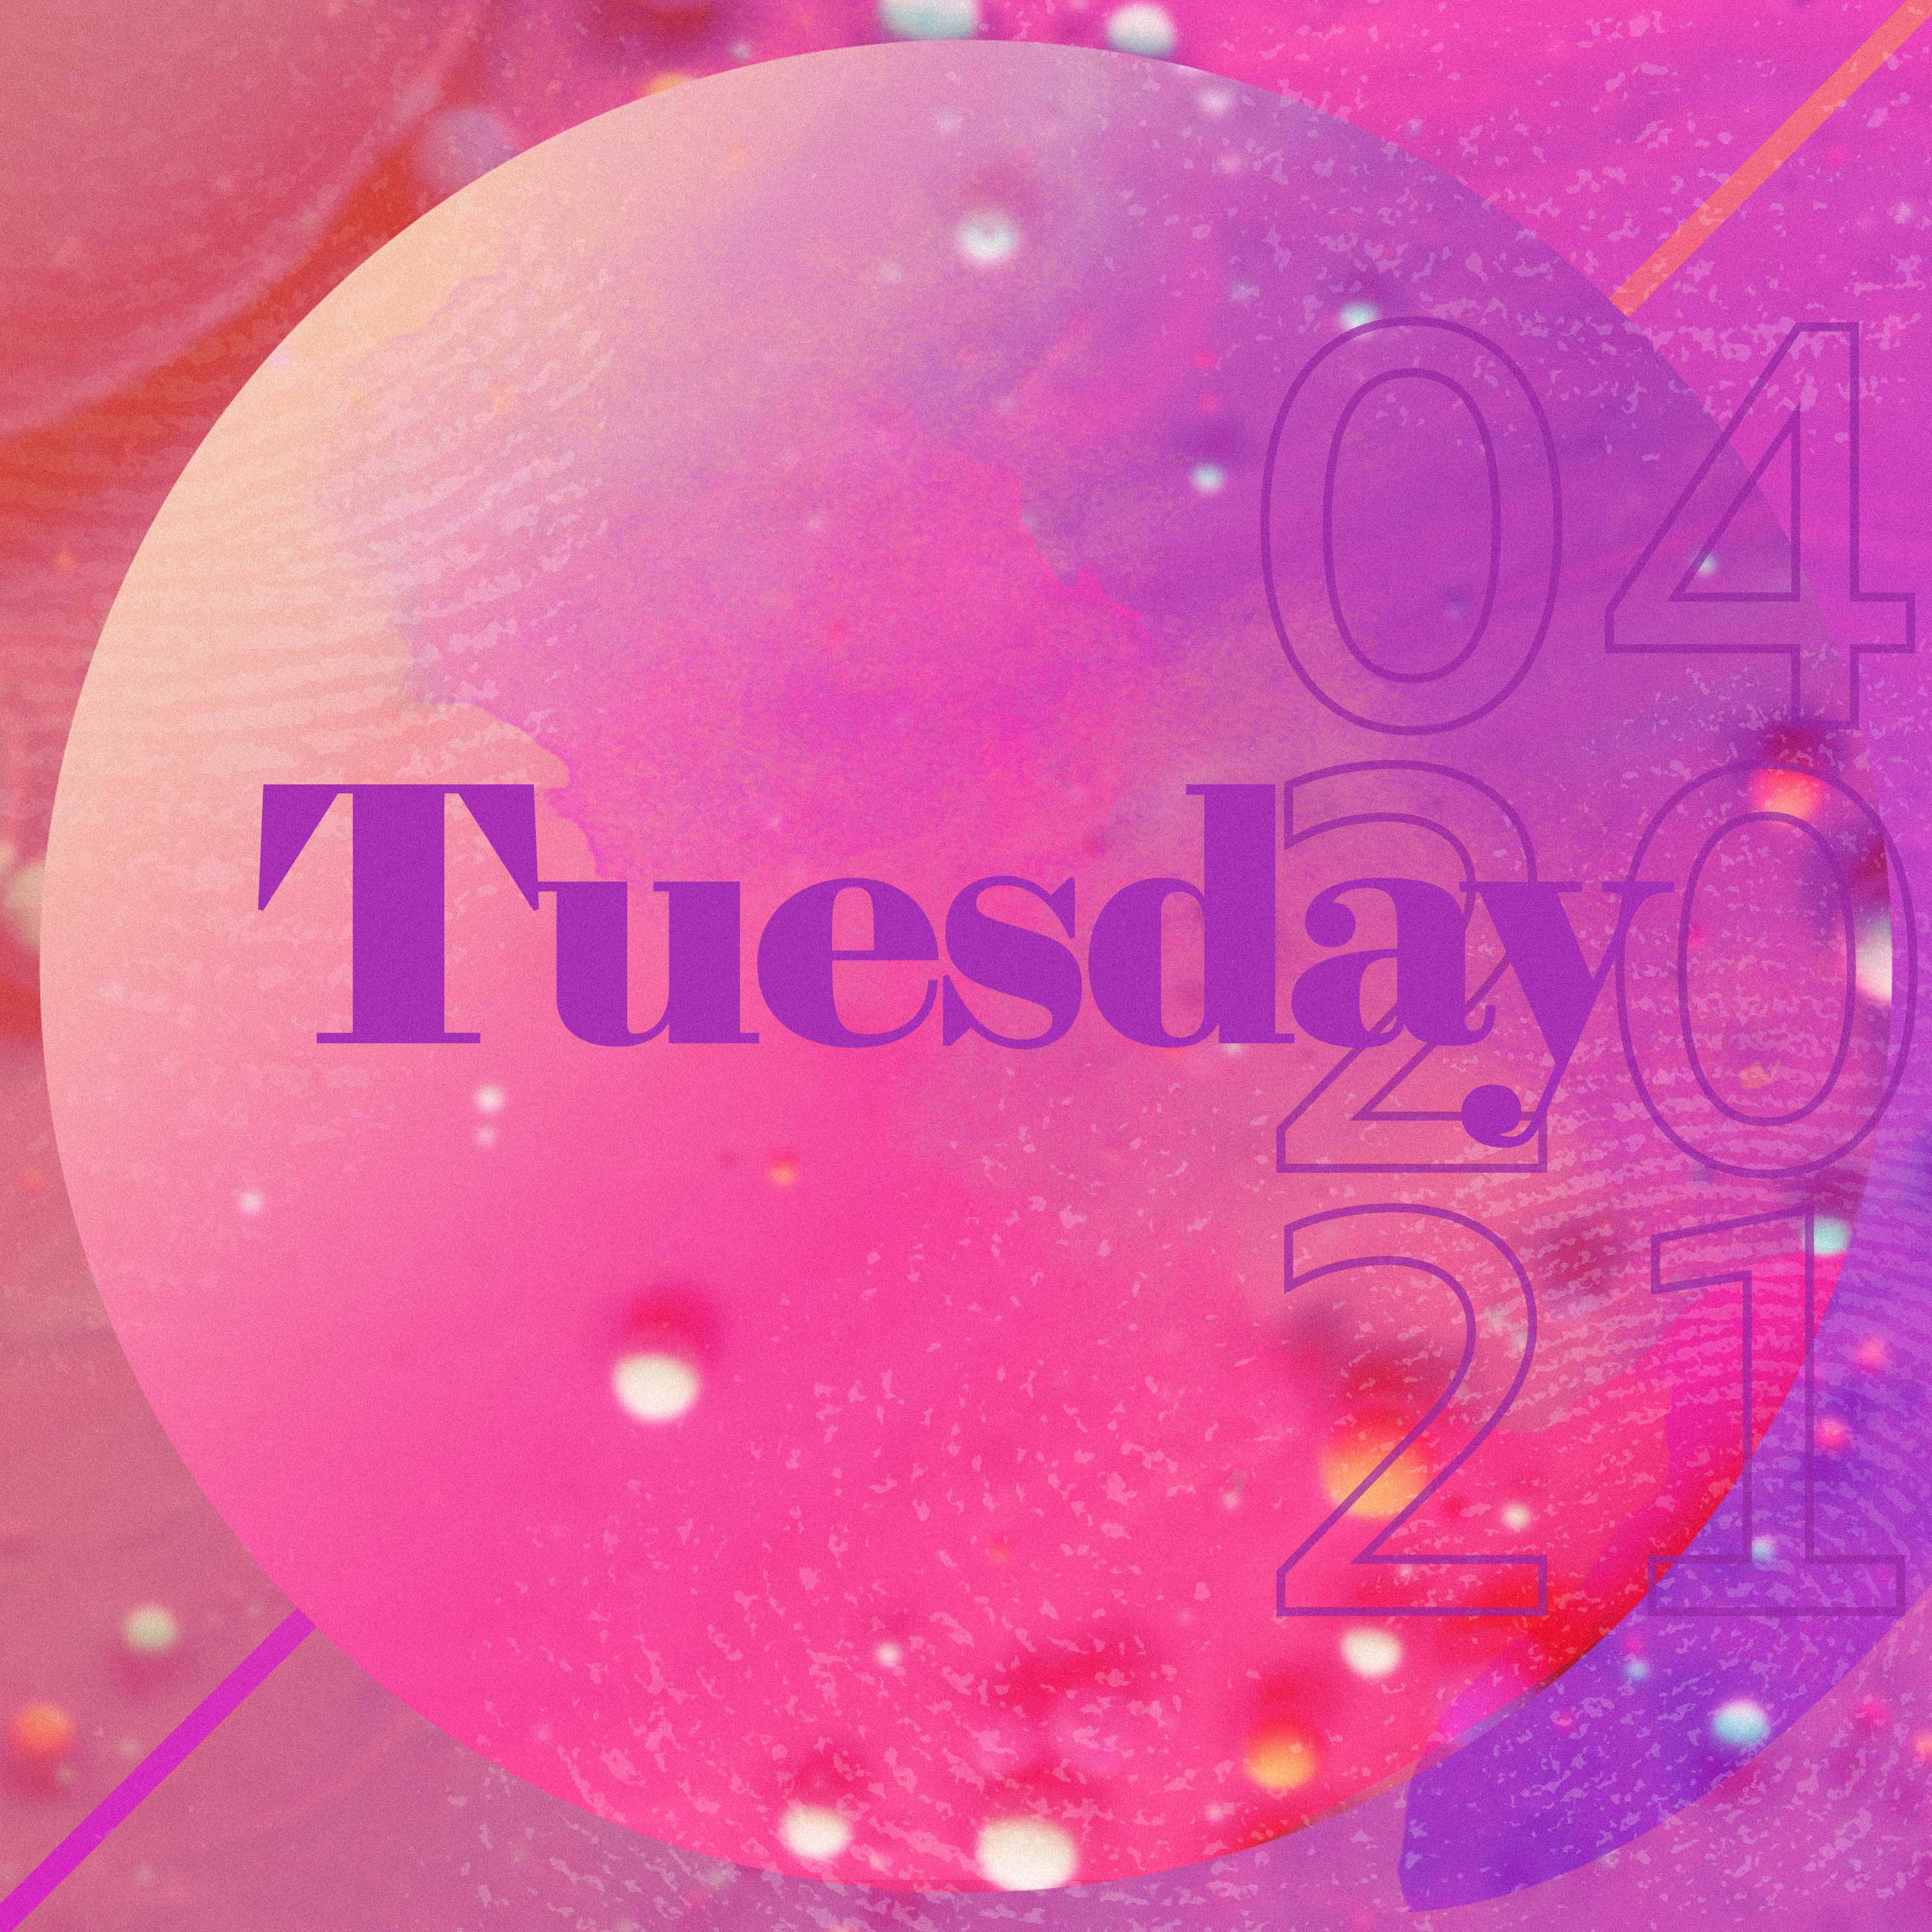 TUESDAY, APRIL 20th